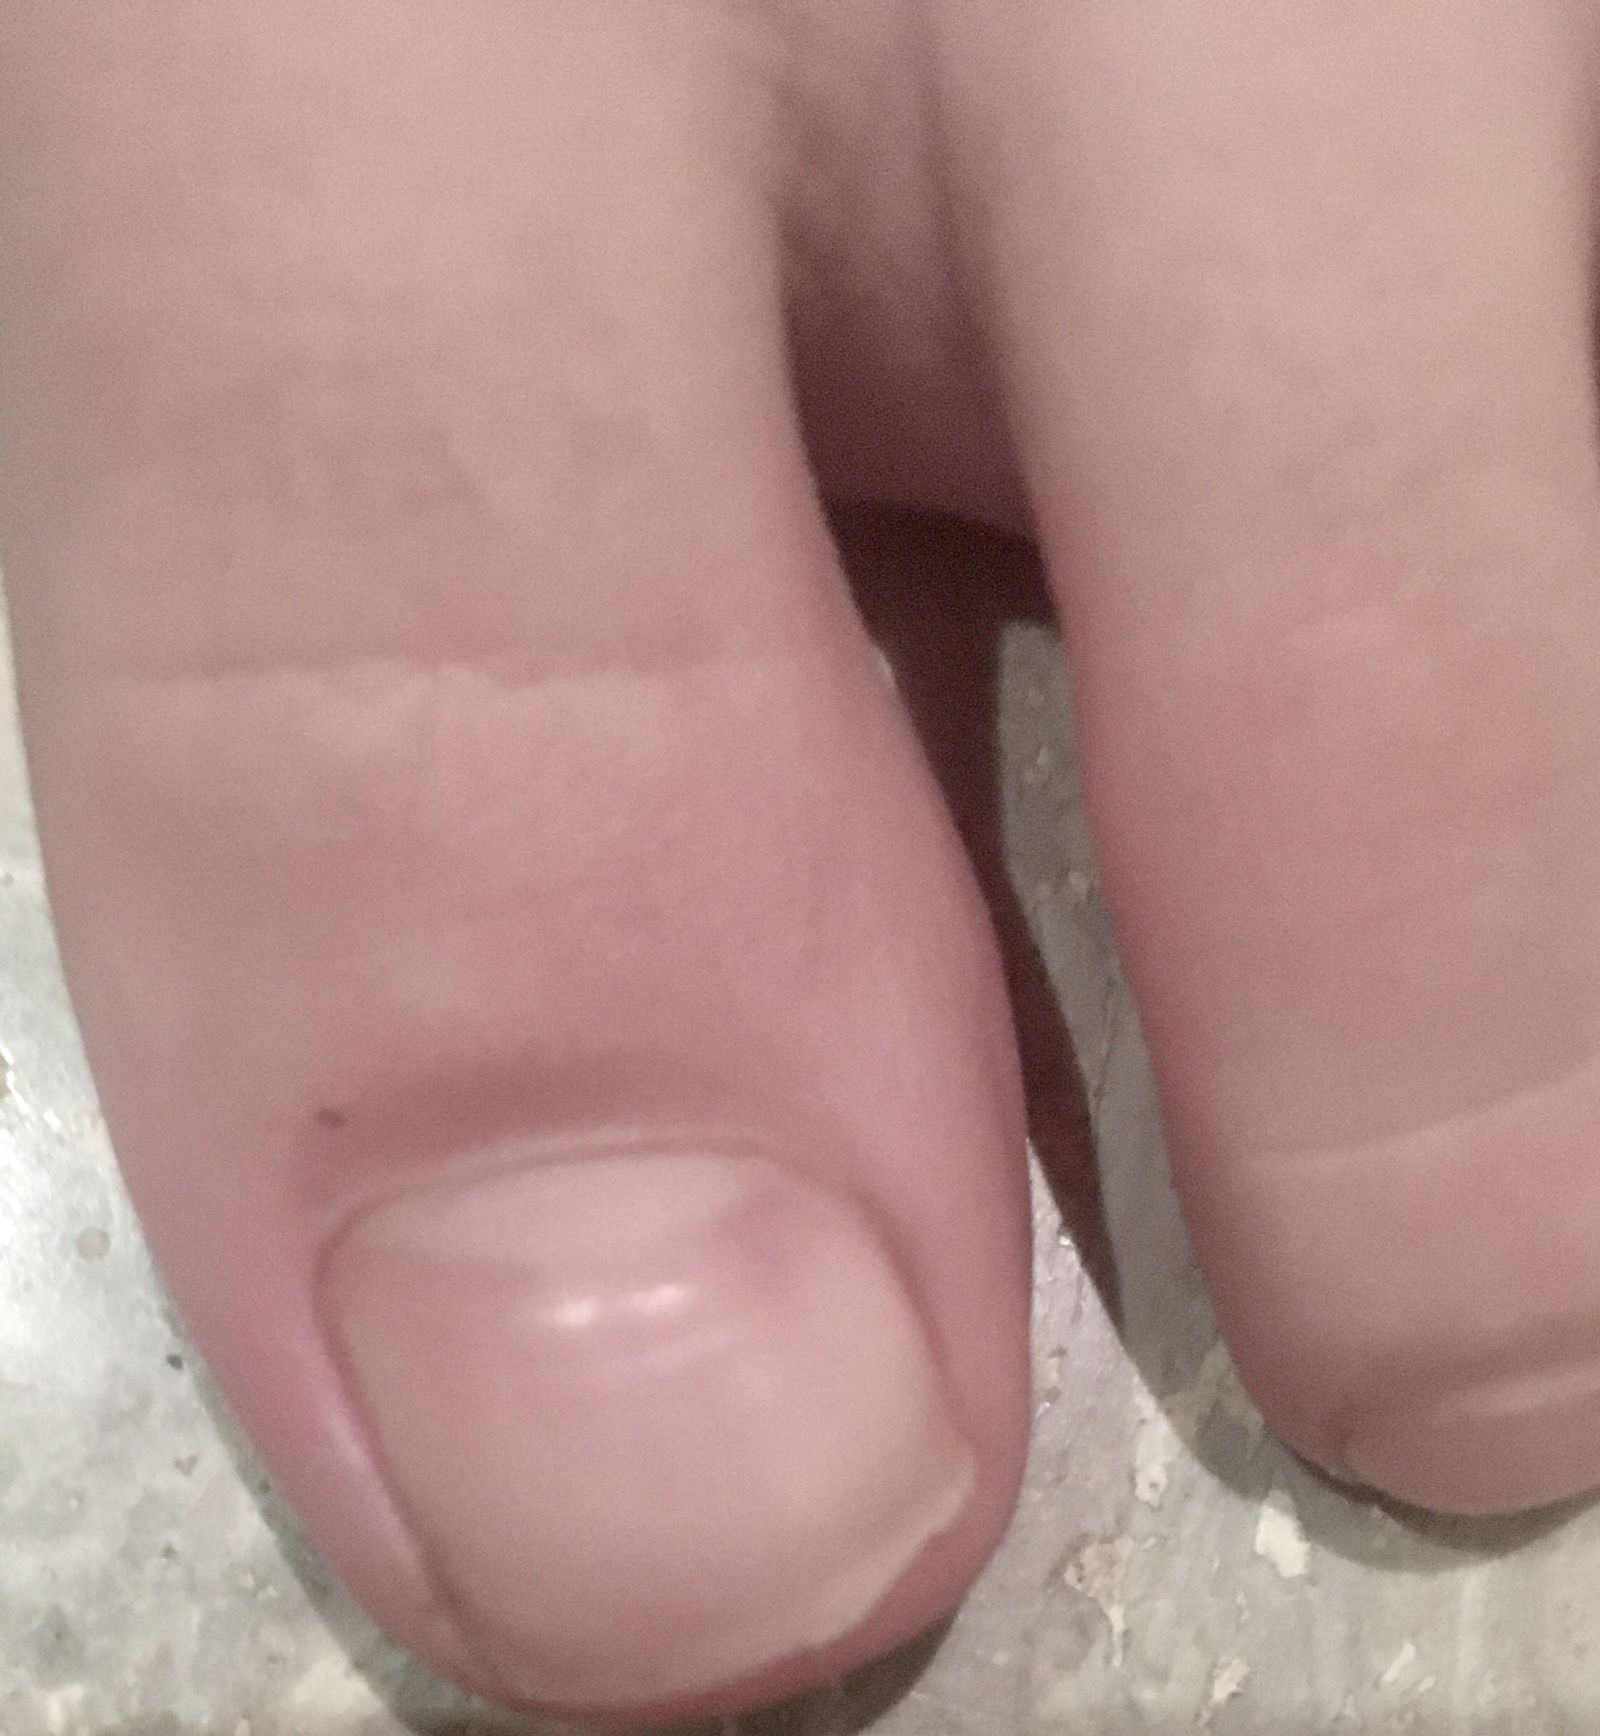 Five days later, the toe is markedly less red and the edge of the nail is visible again